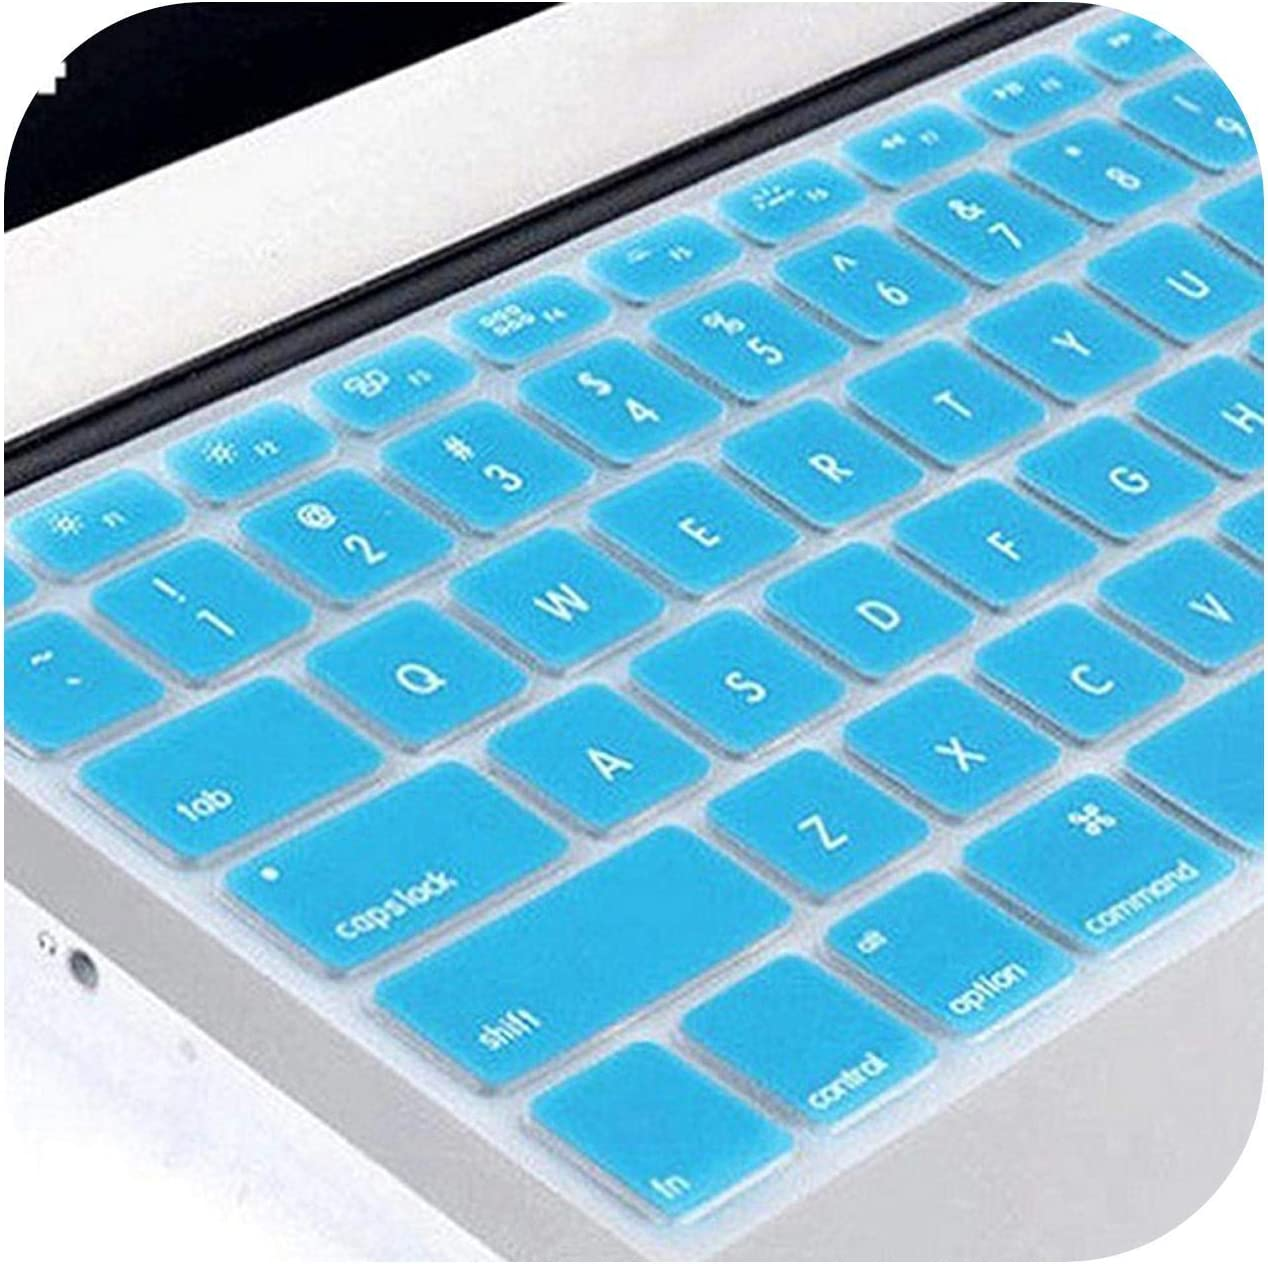 Silicone Keyboard Skin Protector Film Case Cover for MacBook Laptop Notebook-Light Blue